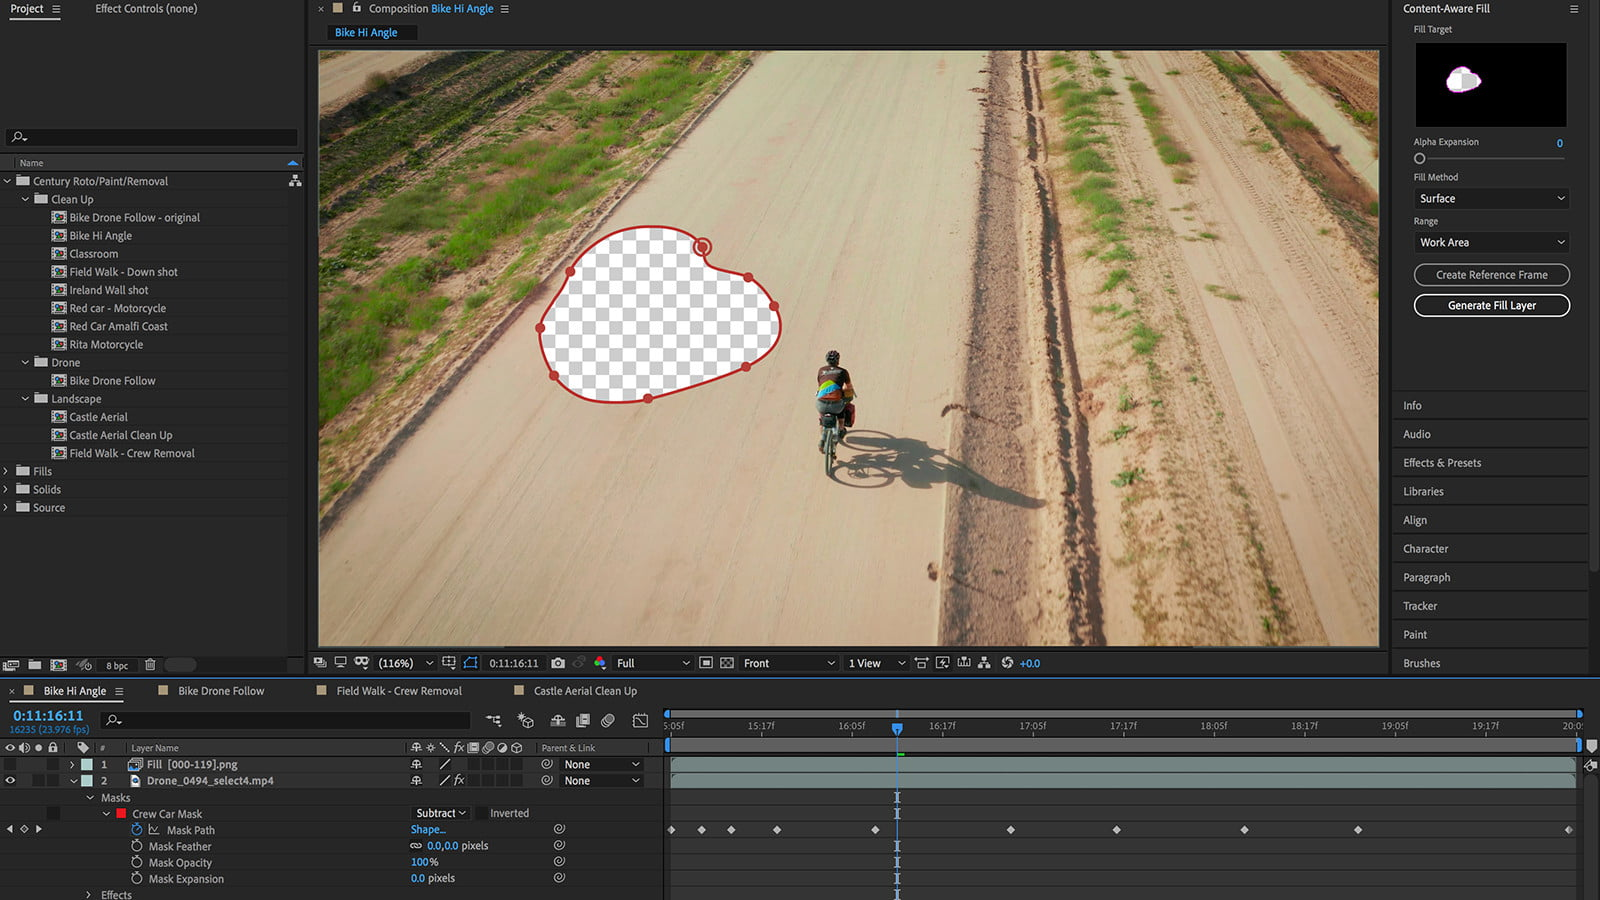 Adobe After Effects New Content-Aware Fill makes Objects